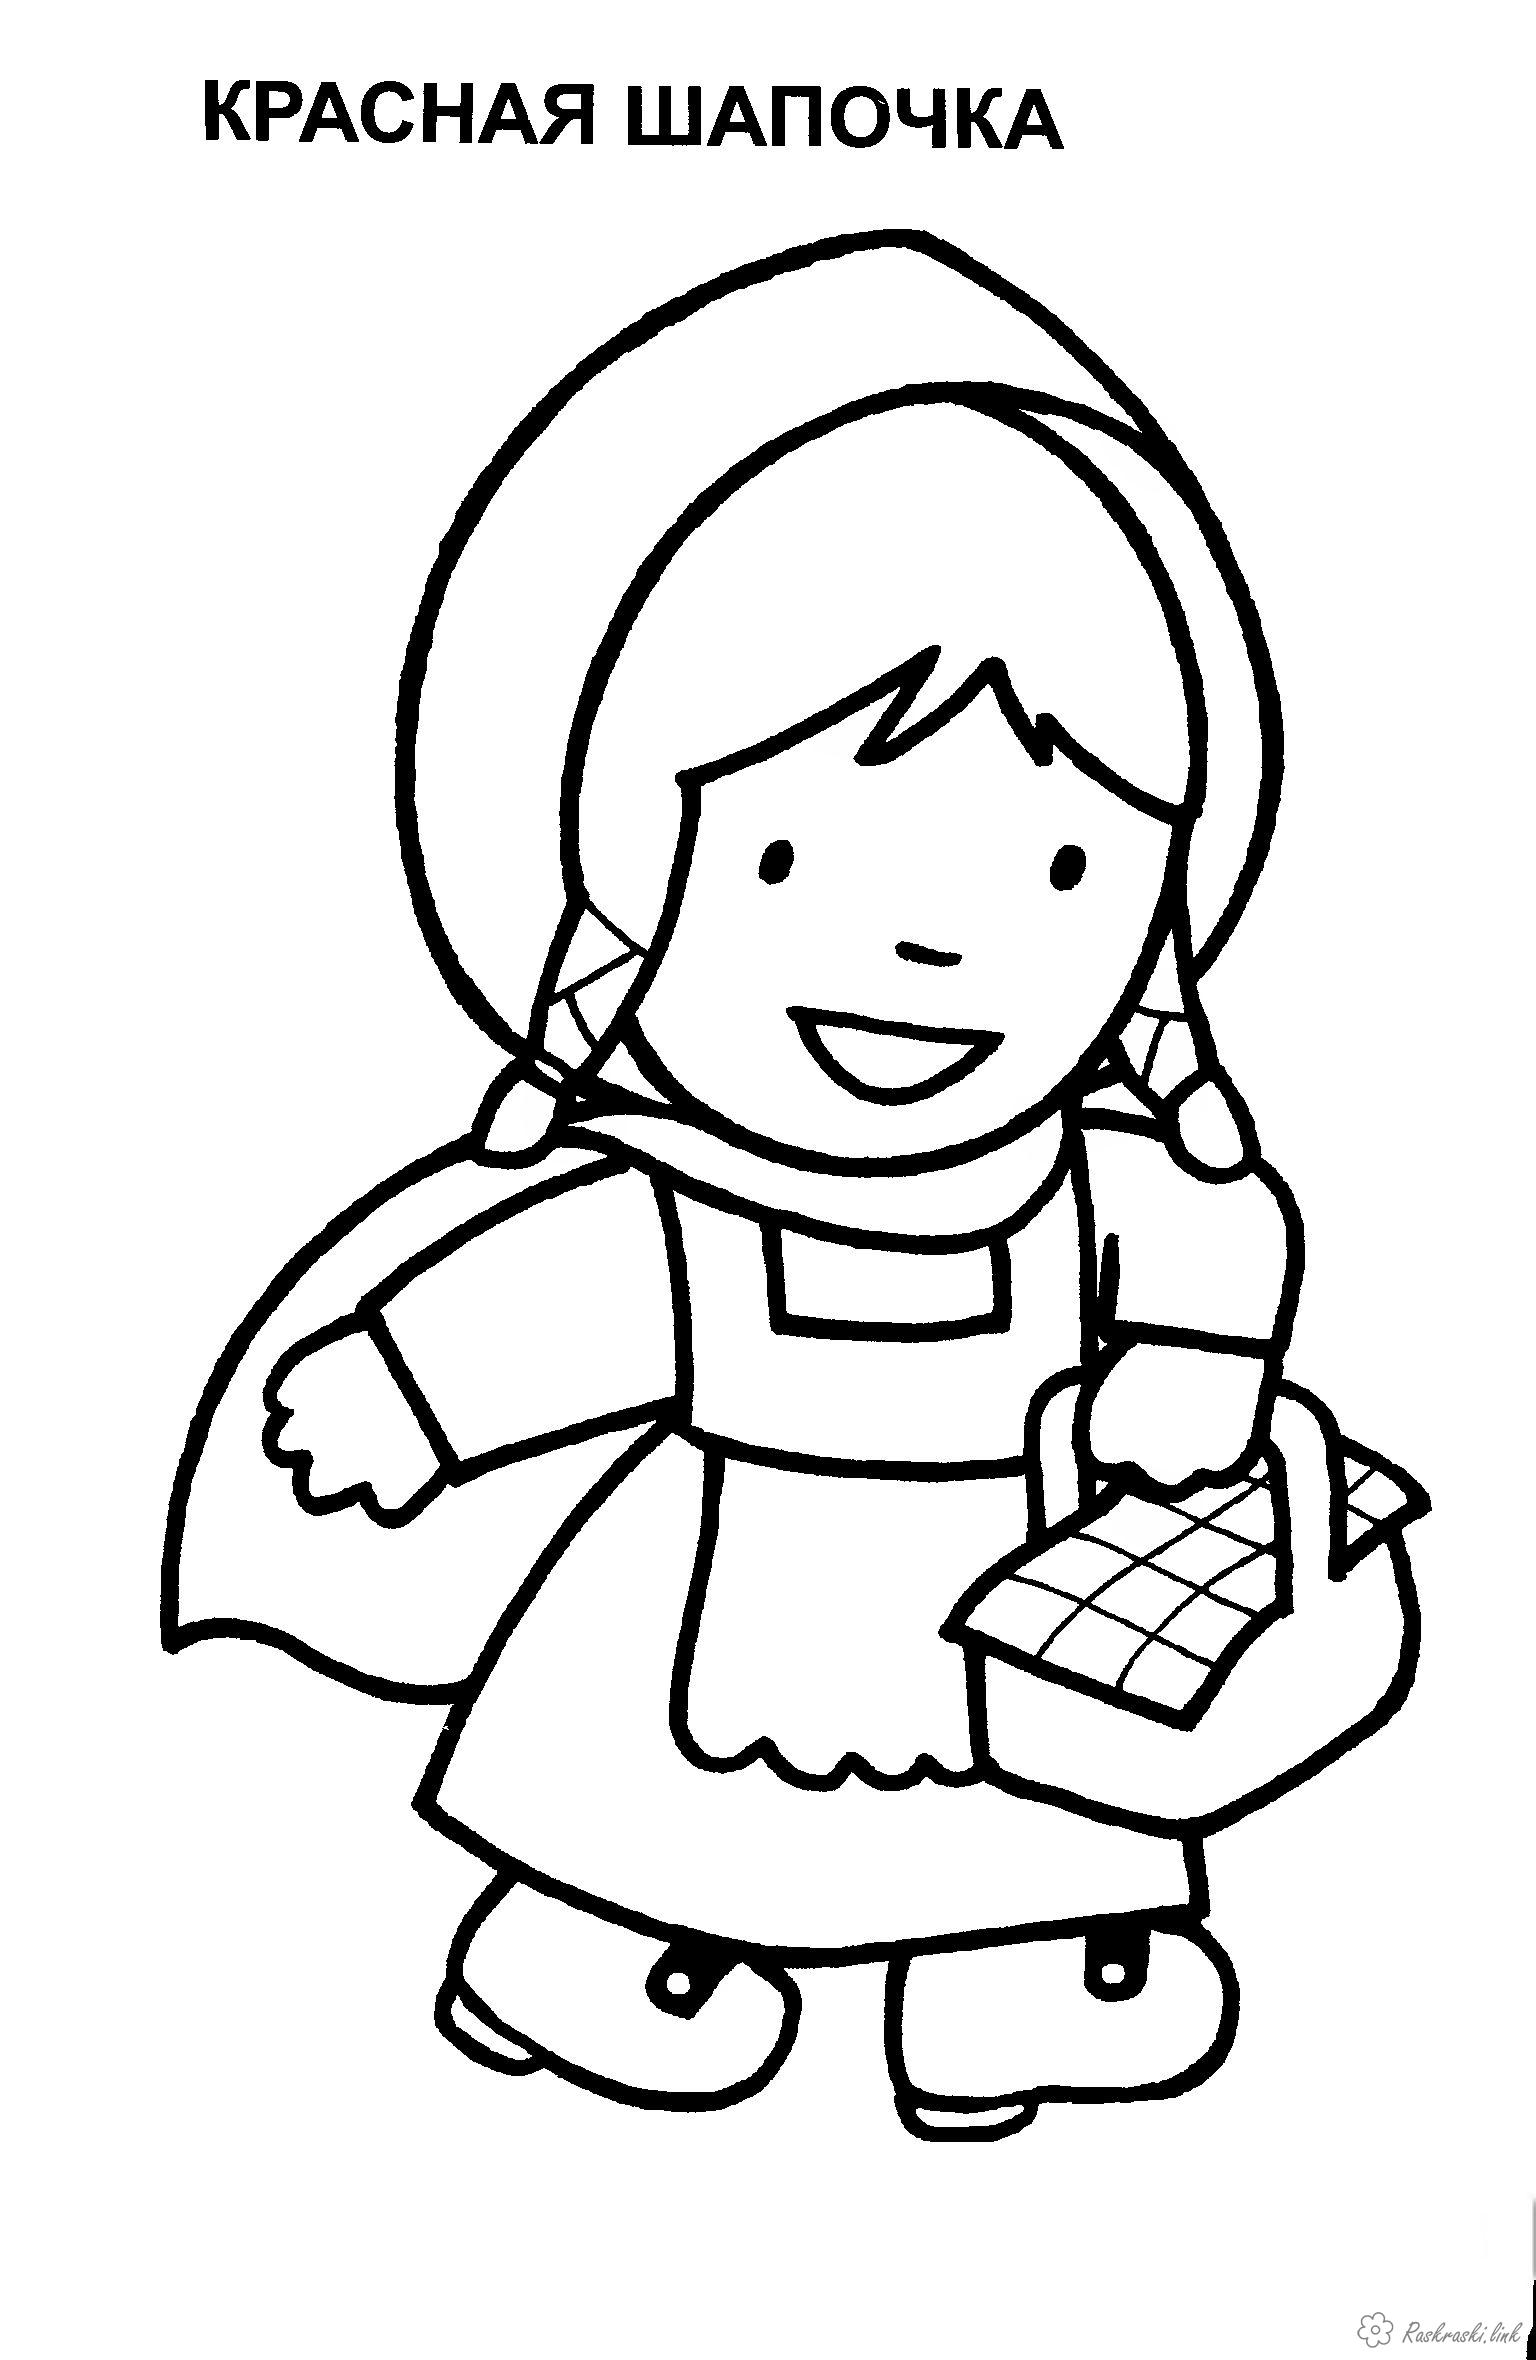 Coloring Simple coloring pages for kids Kids coloring pages Girl